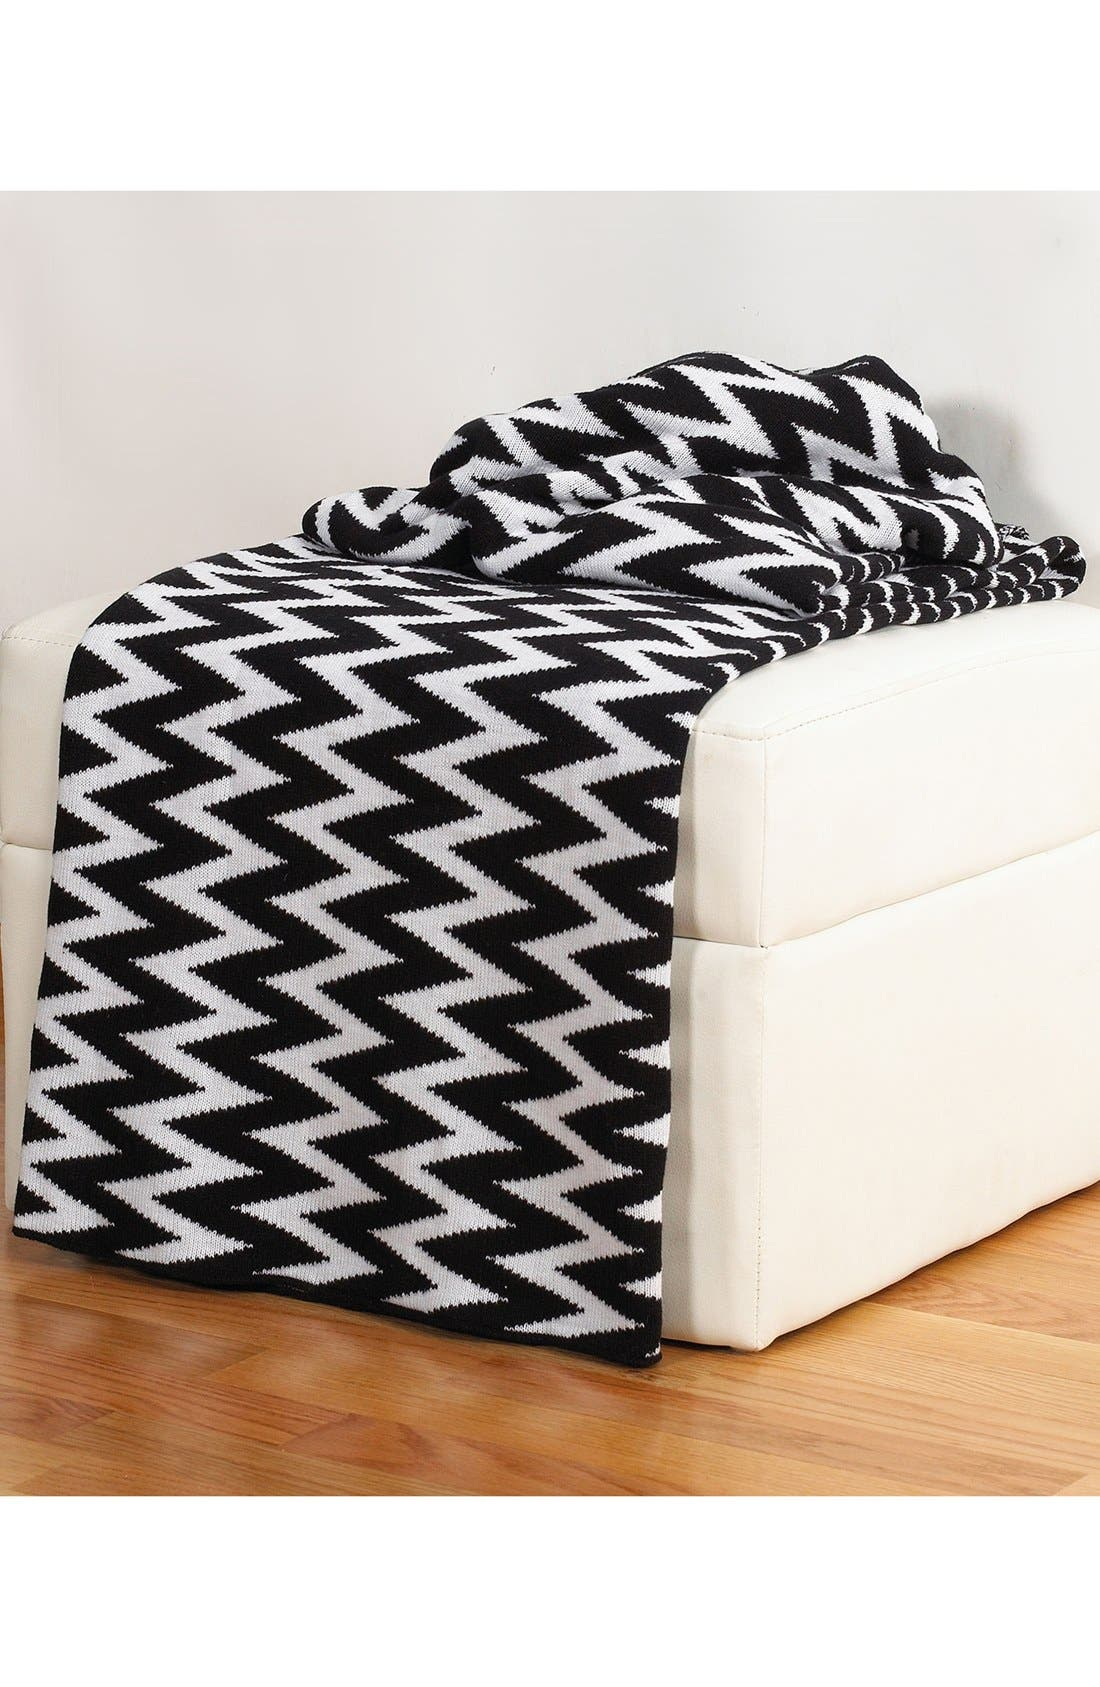 Alternate Image 1 Selected - Rizzy Home Chevron Throw